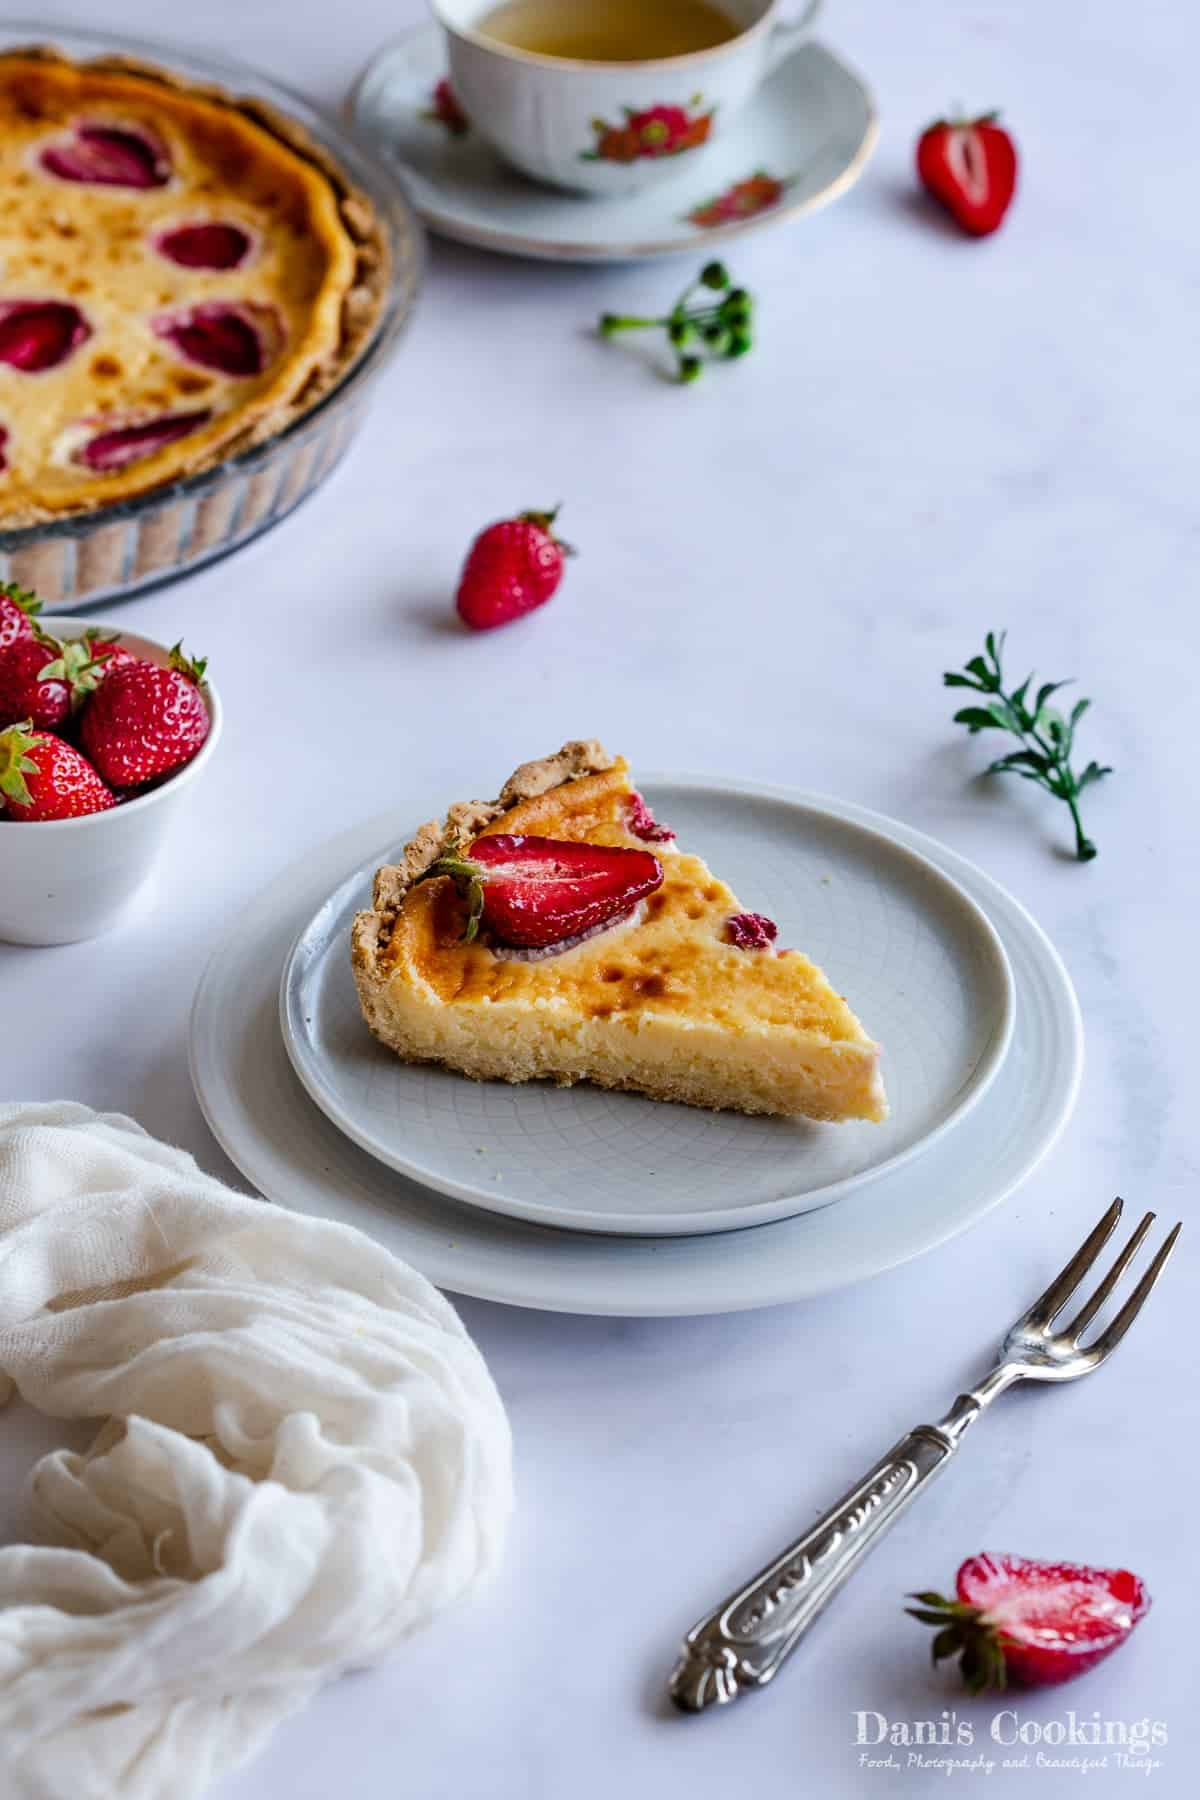 a slice of tart with strawberries on top